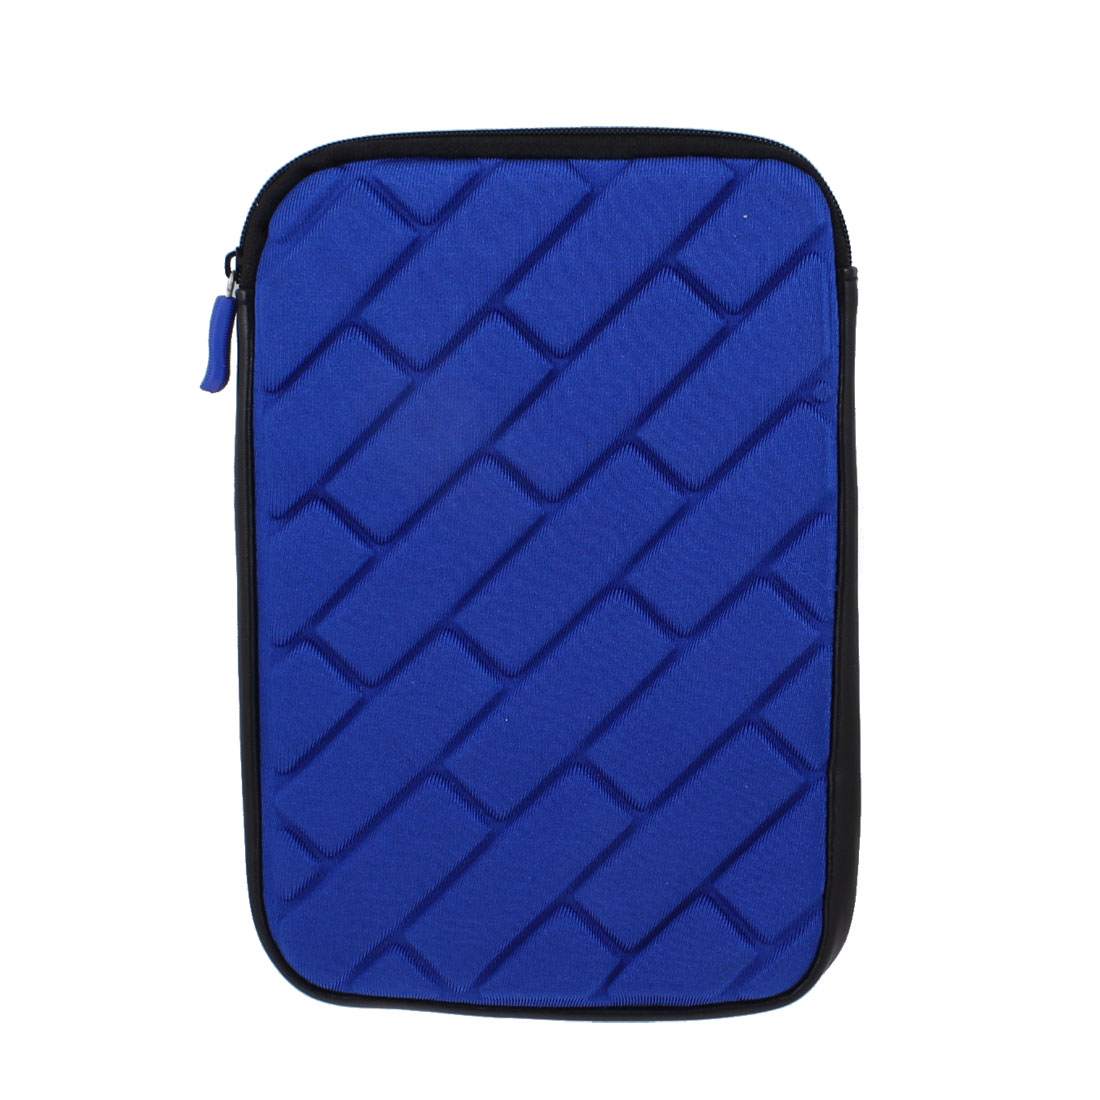 "7"" Tablet Zip up Sleeve Bag Case Cover Pouch Blue for Android 4.0"